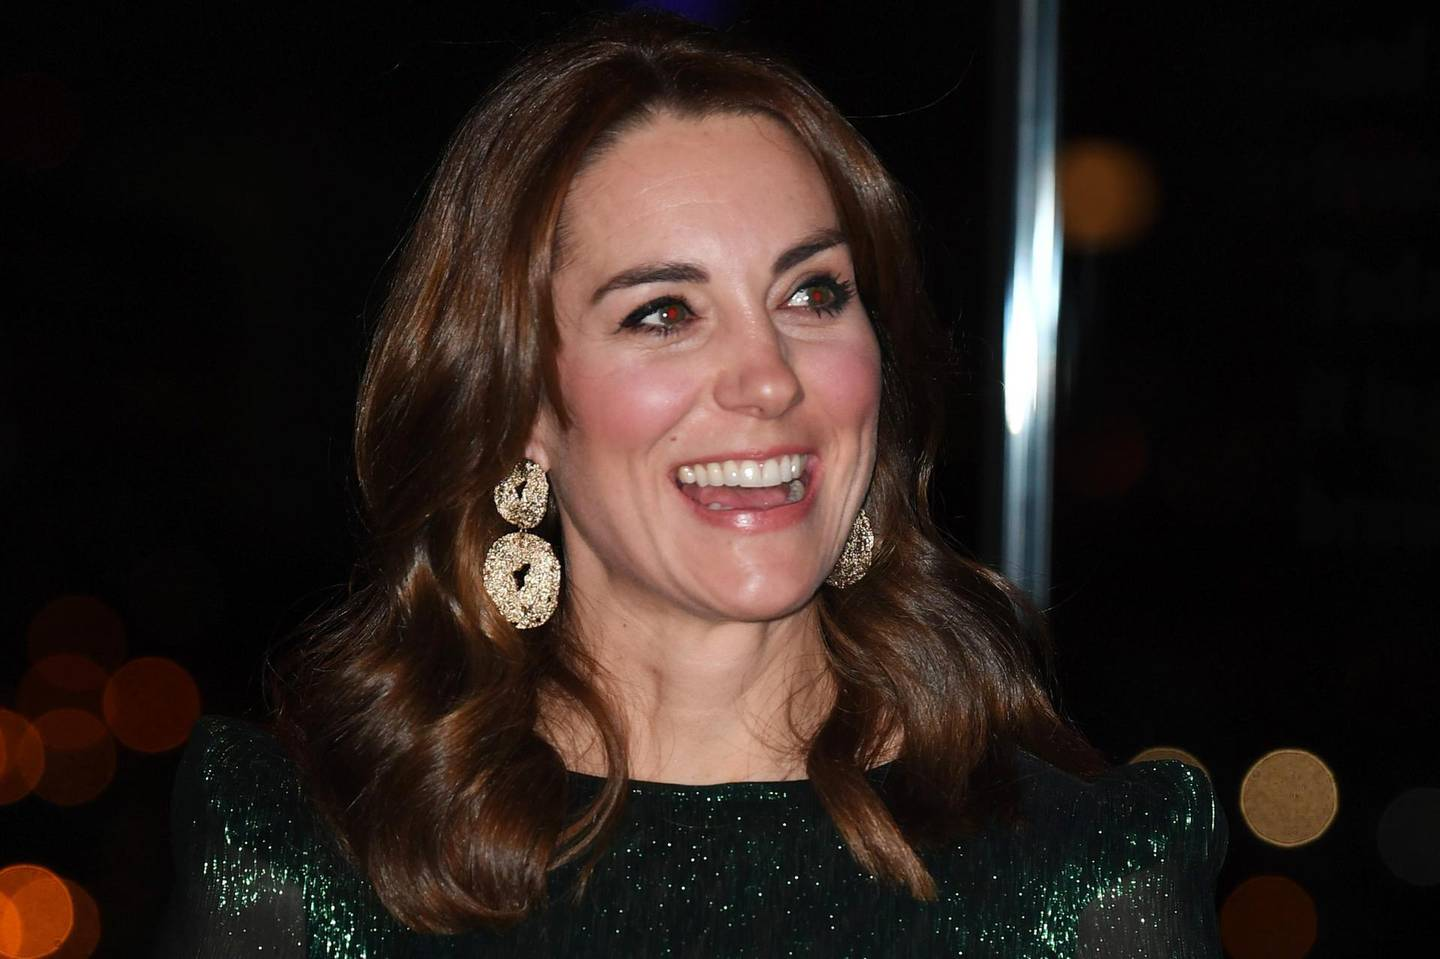 DUBLIN, IRELAND - MARCH 03: Catherine, Duchess of Cambridge drinks a pint of Guinness during a reception with Prince William, Duke of Cambridge, hosted by the British Ambassador to Ireland Robin Barnett, at the Guinness Storehouses Gravity Bar during day one of their visit to Ireland on March 03, 2020 in Dublin, Ireland. (Photo by James Whatling - WPA Pool/Getty Images)